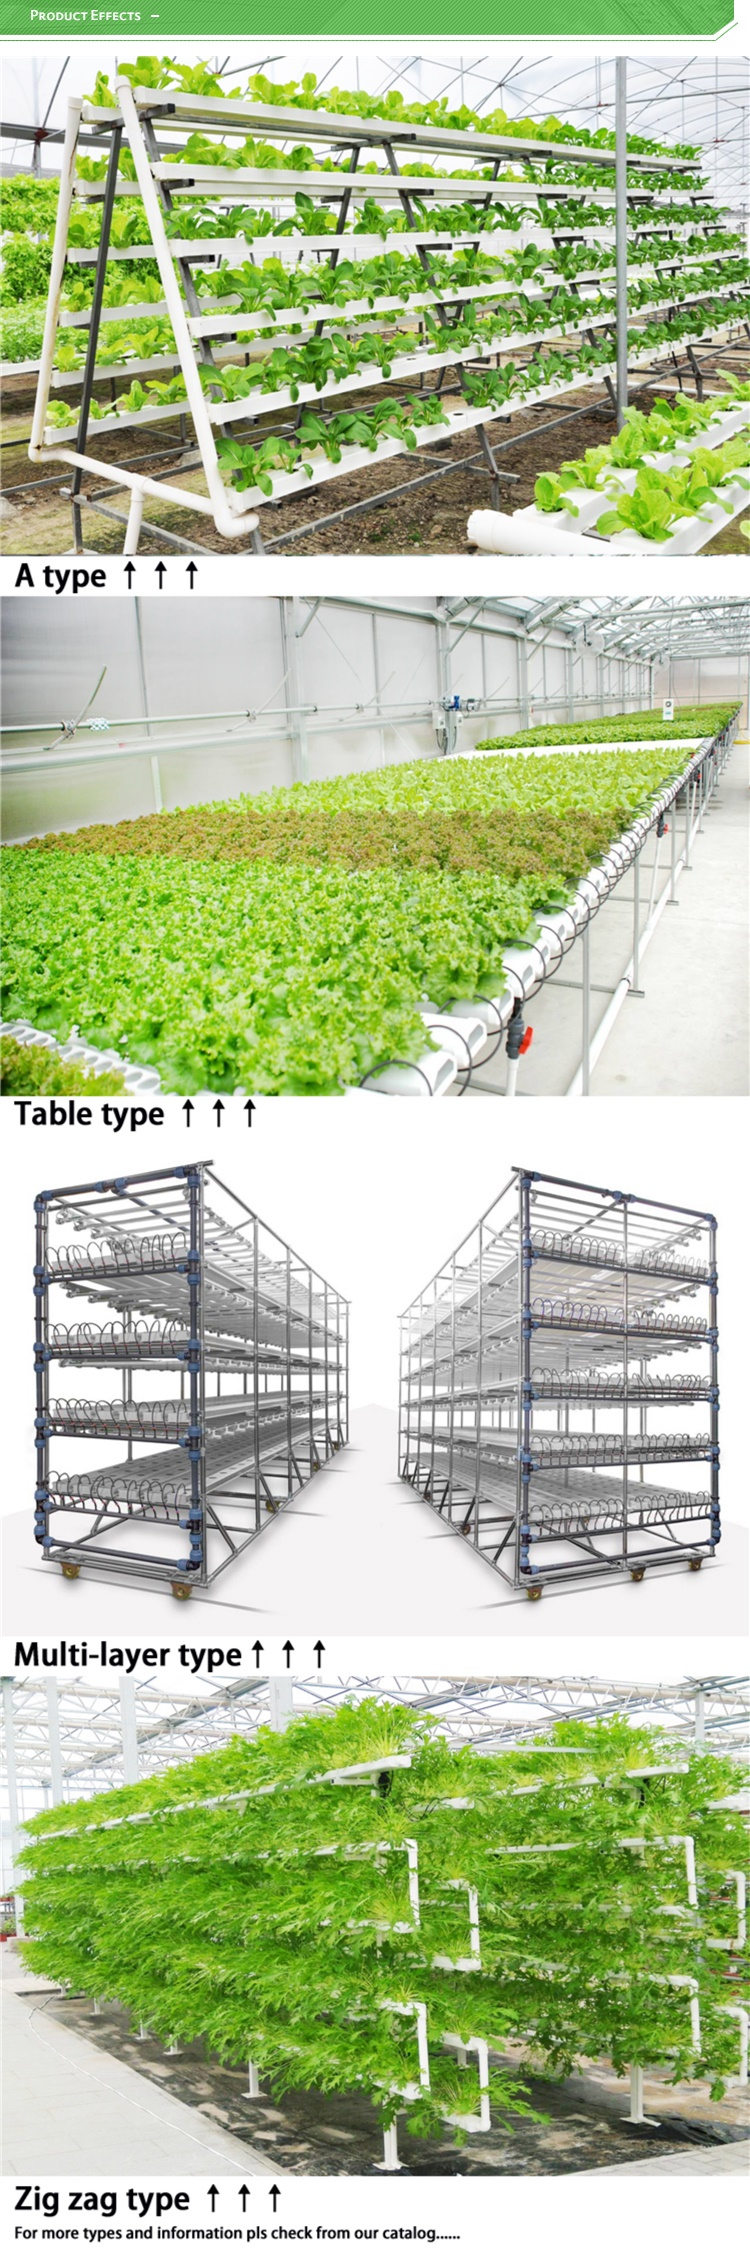 Vertical hydroponic pvc grow farming systems